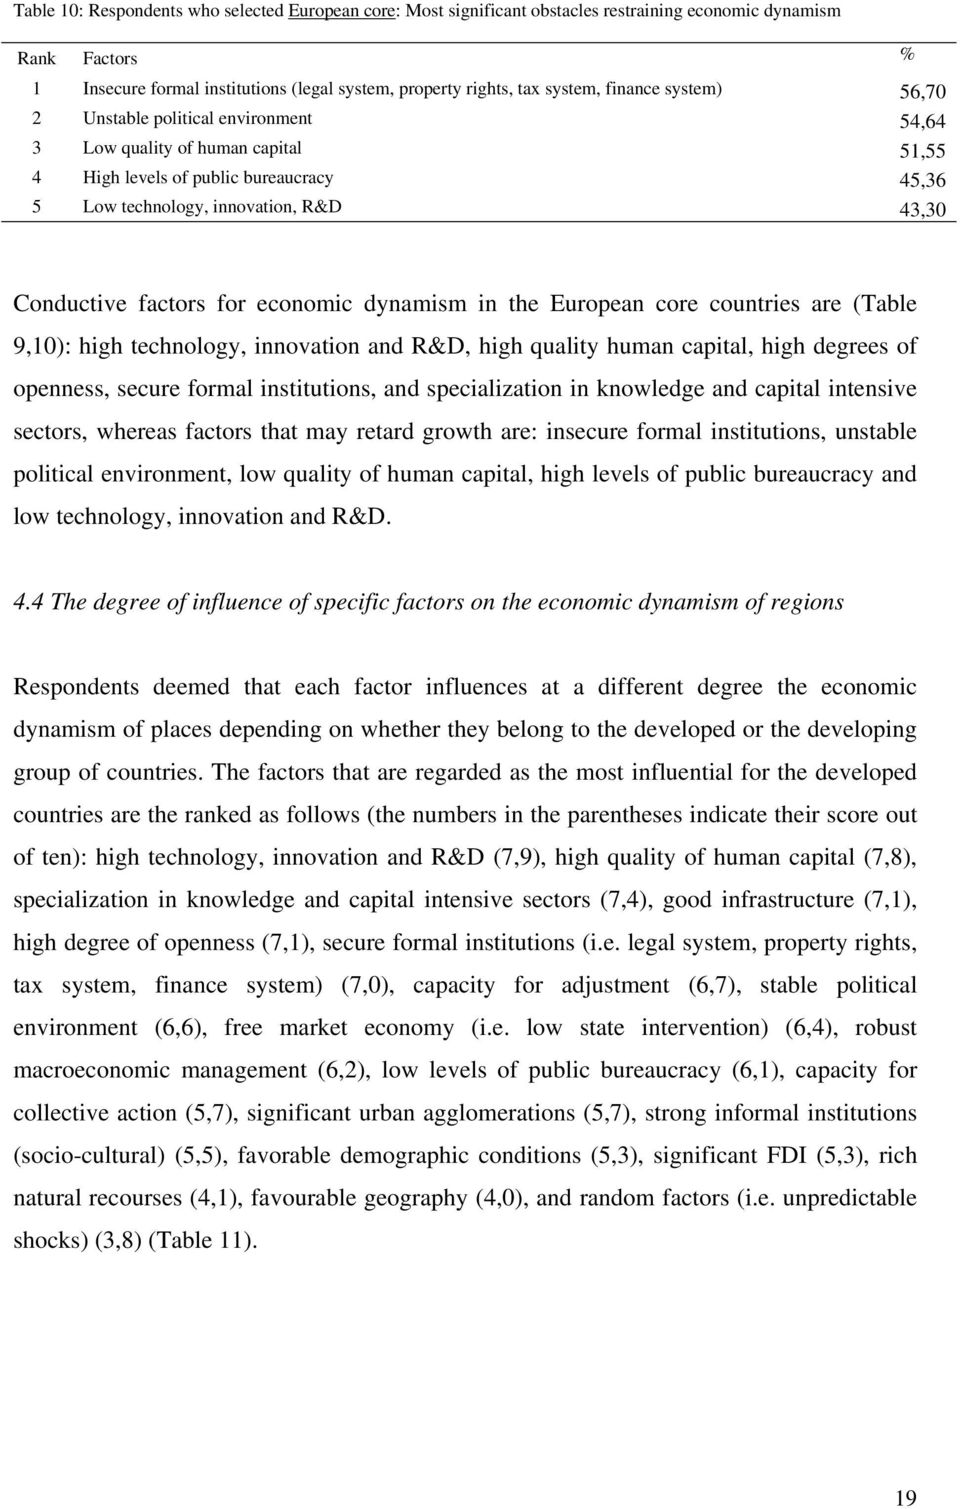 for economic dynamism in the European core countries are (Table 9,10): high technology, innovation and R&D, high quality human capital, high degrees of openness, secure formal institutions, and